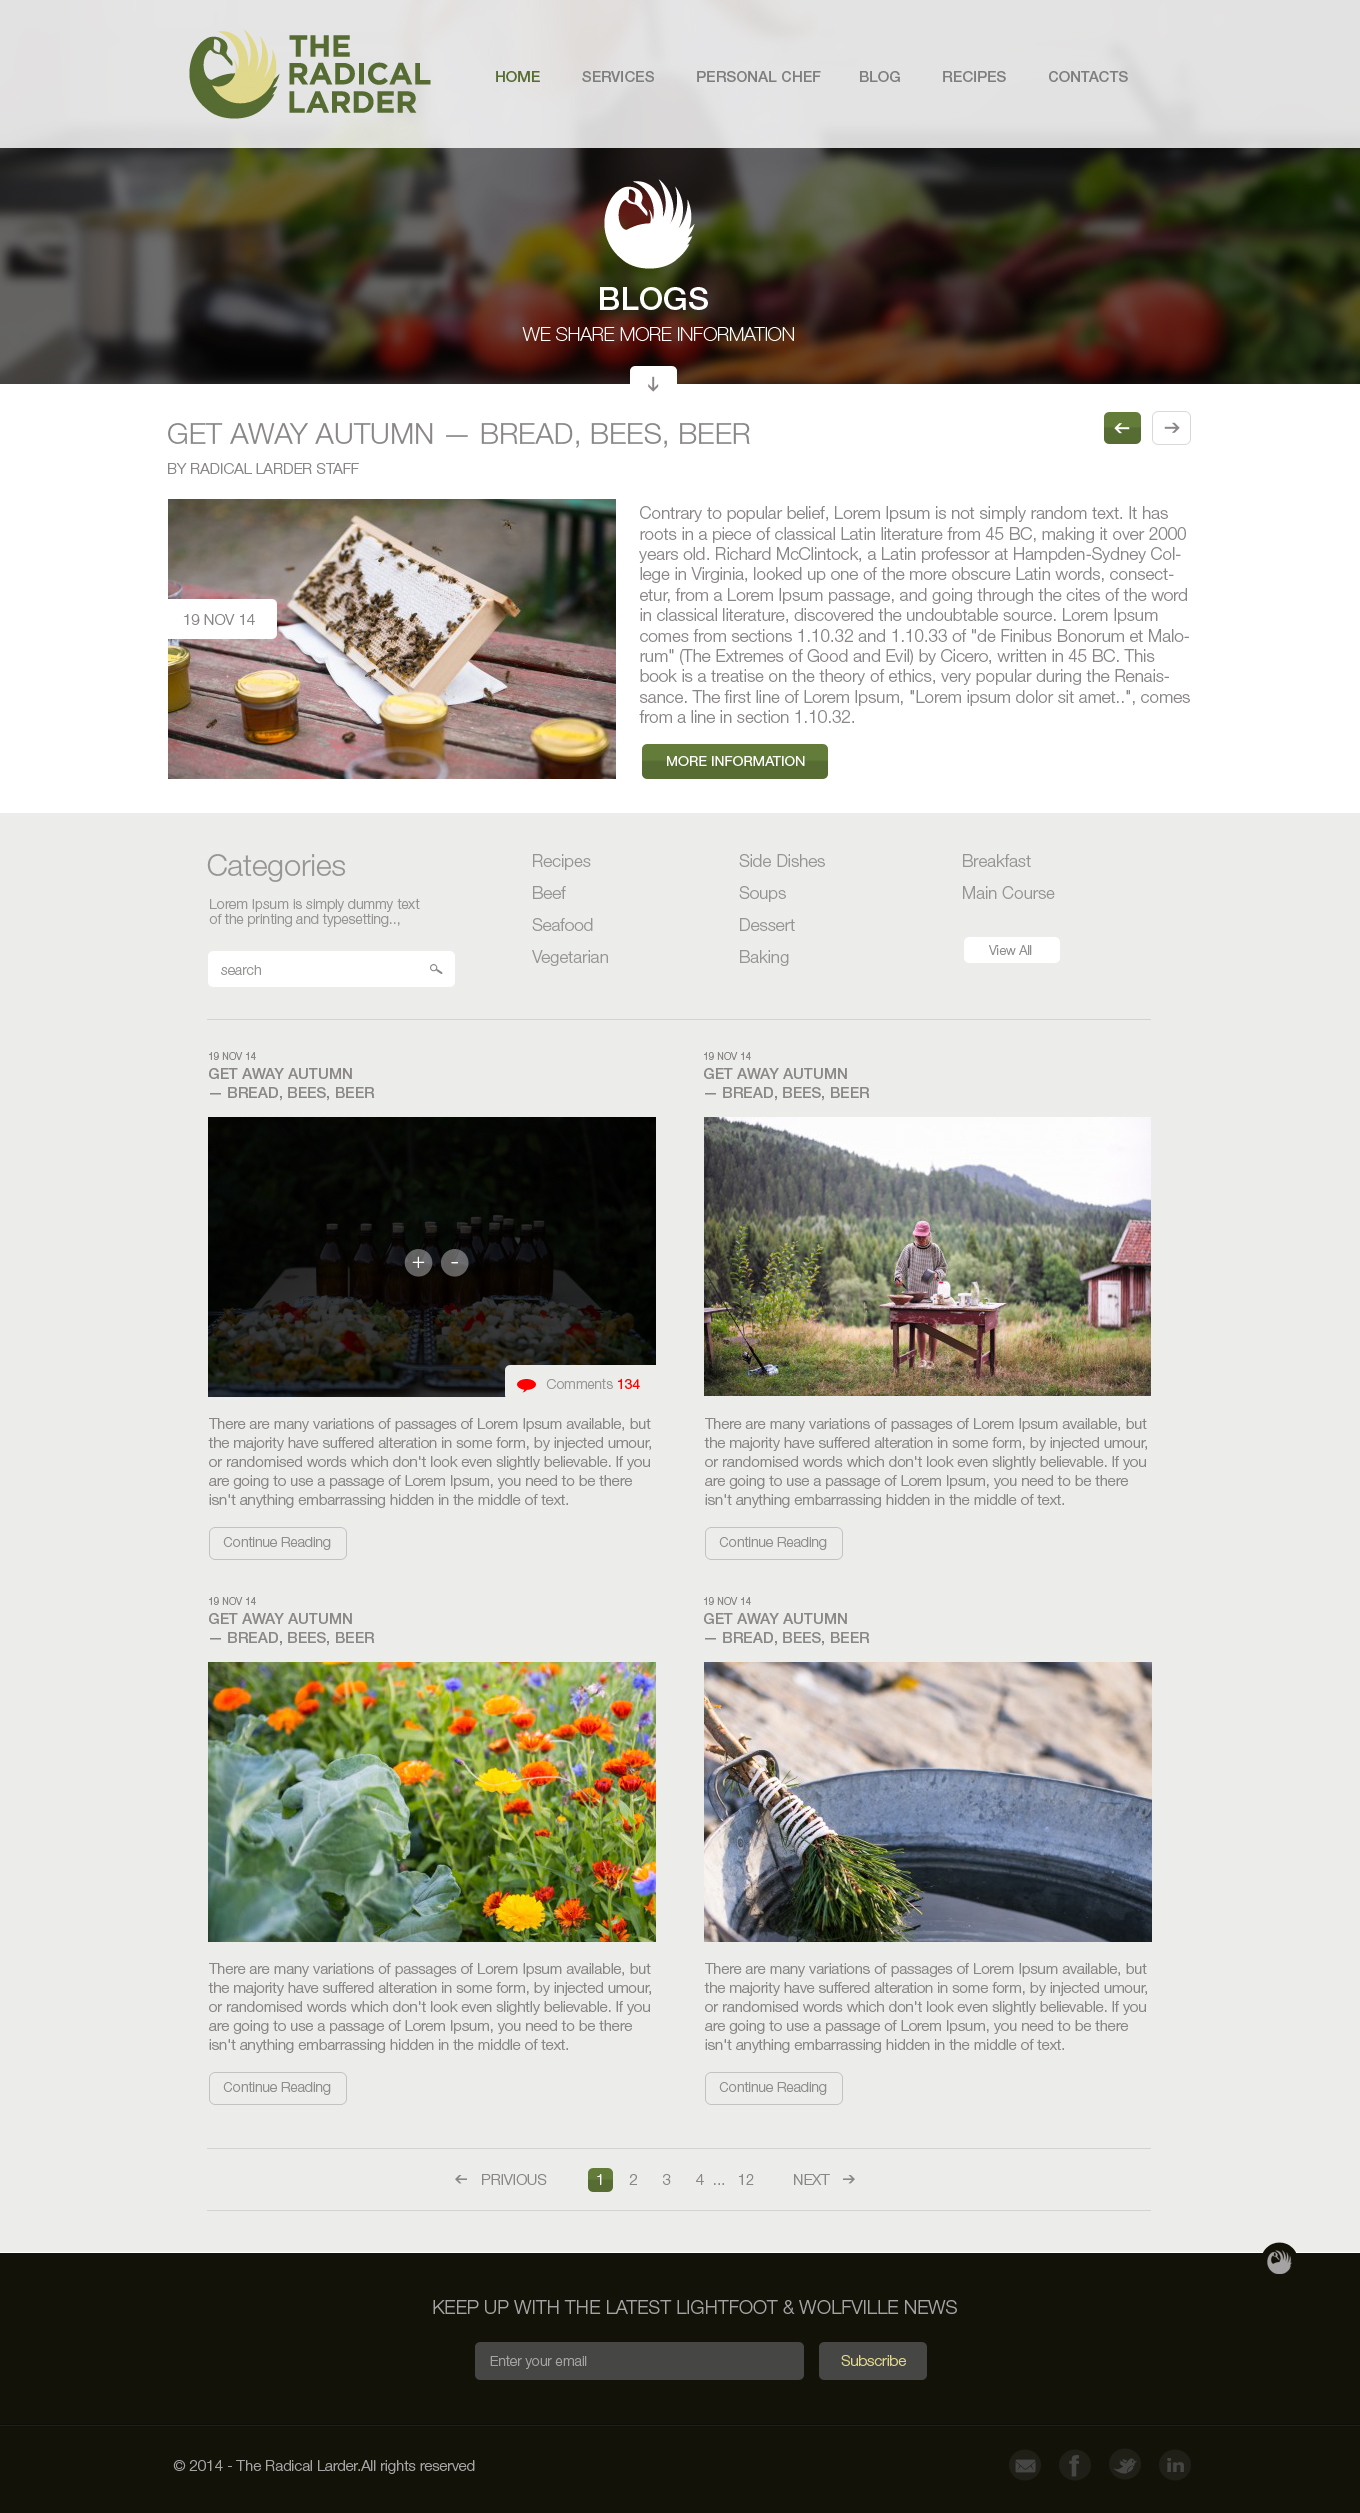 Web Page Design by Vivek Karthick - Entry No. 96 in the Web Page Design Contest The Radical Larder Web Page Design.